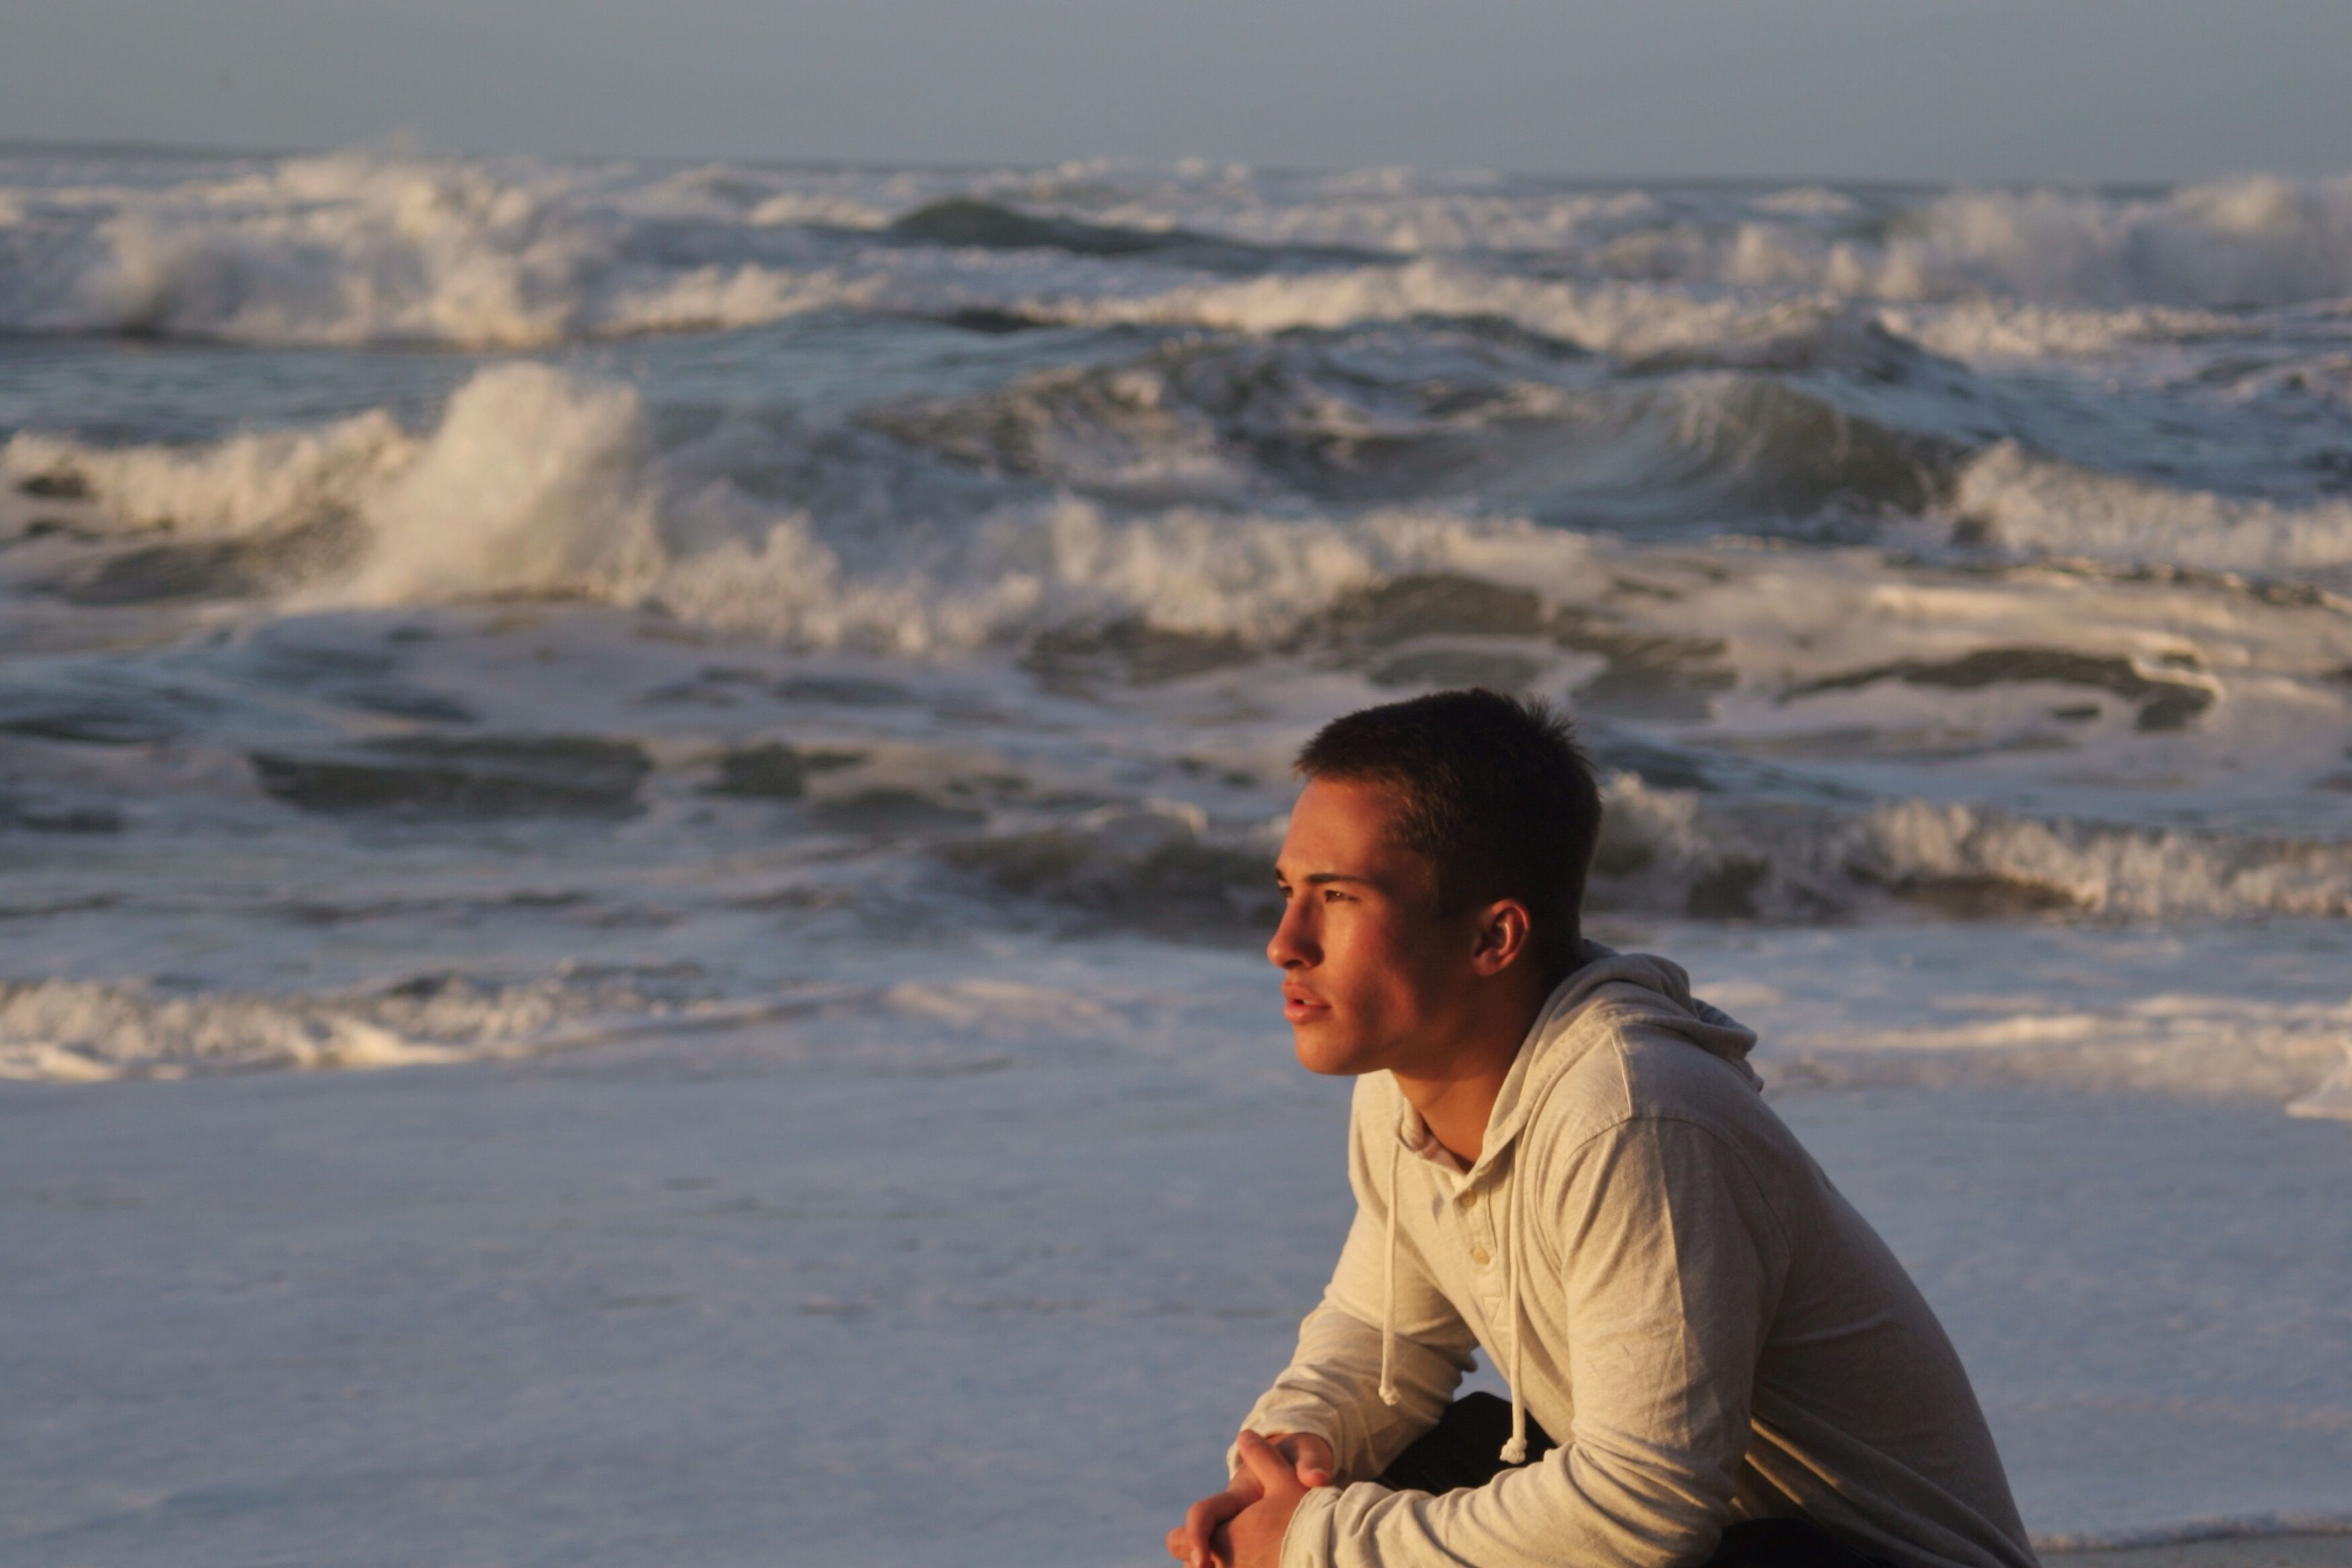 person, lifestyles, young adult, leisure activity, casual clothing, young men, water, headshot, focus on foreground, portrait, waist up, looking at camera, sea, smiling, standing, front view, beach